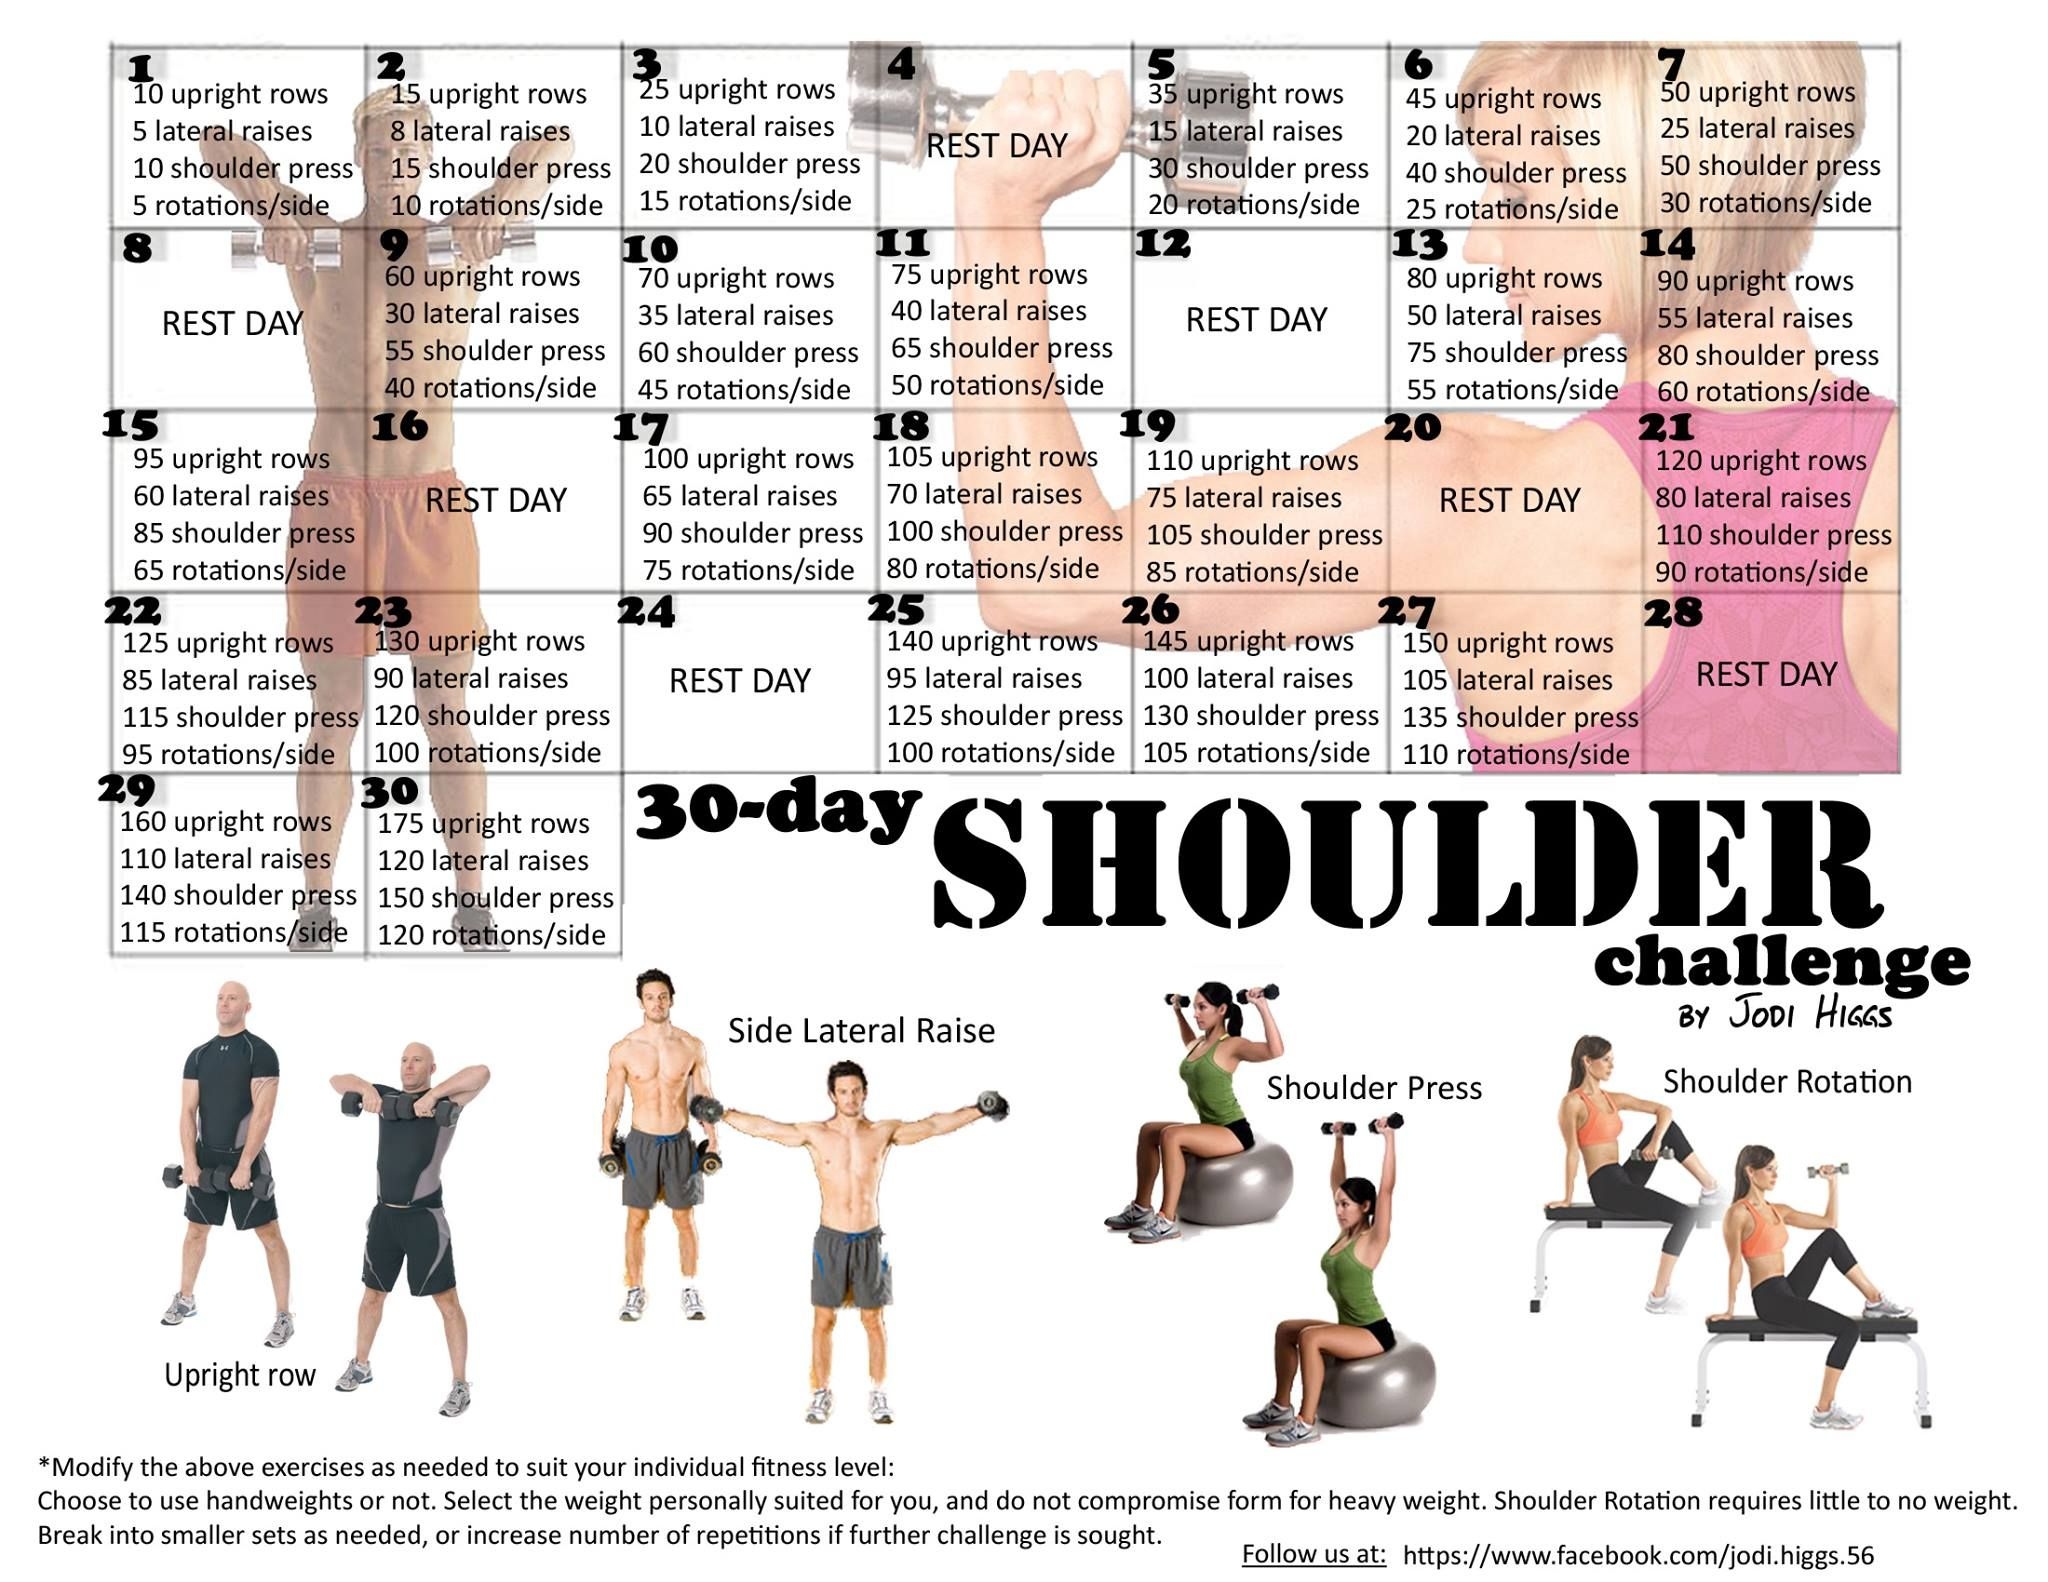 Day Shoulder Challenge Fitness Pinterest Exercises - Us weather map 30 day